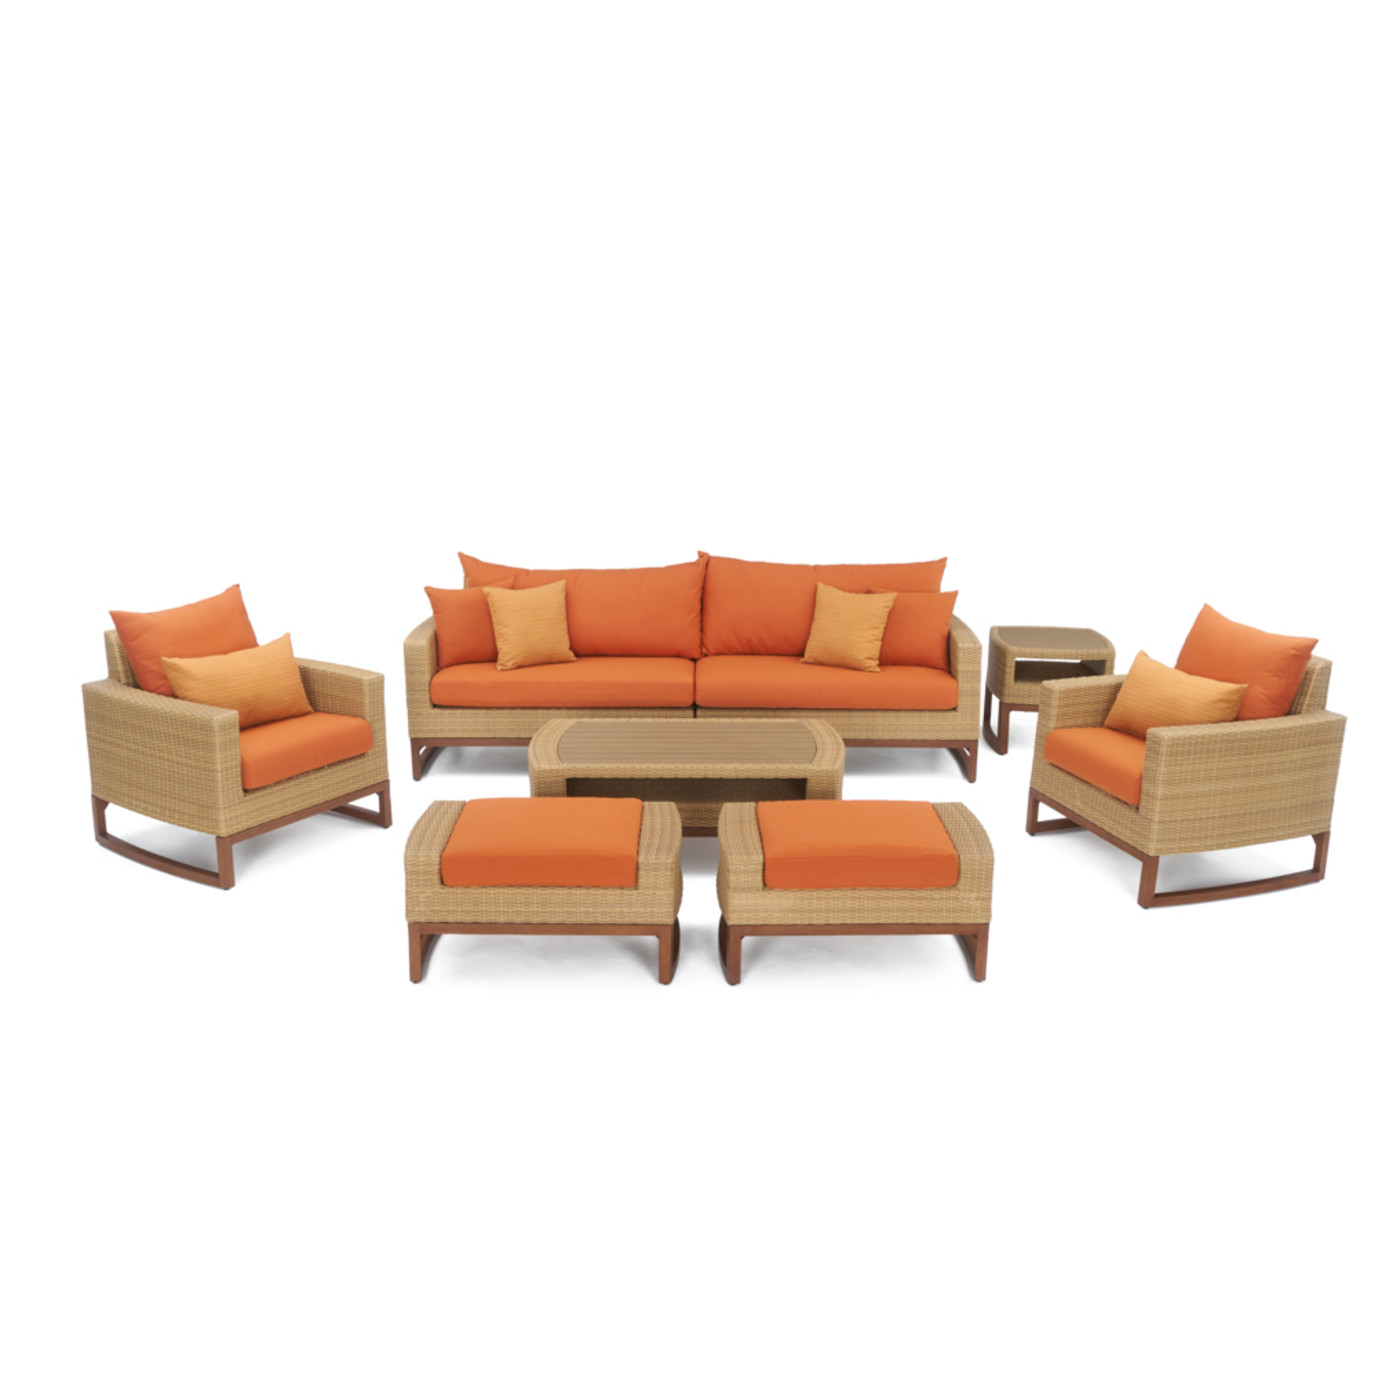 Mili™ 8pc Deep Seating Set - Tikka Orange